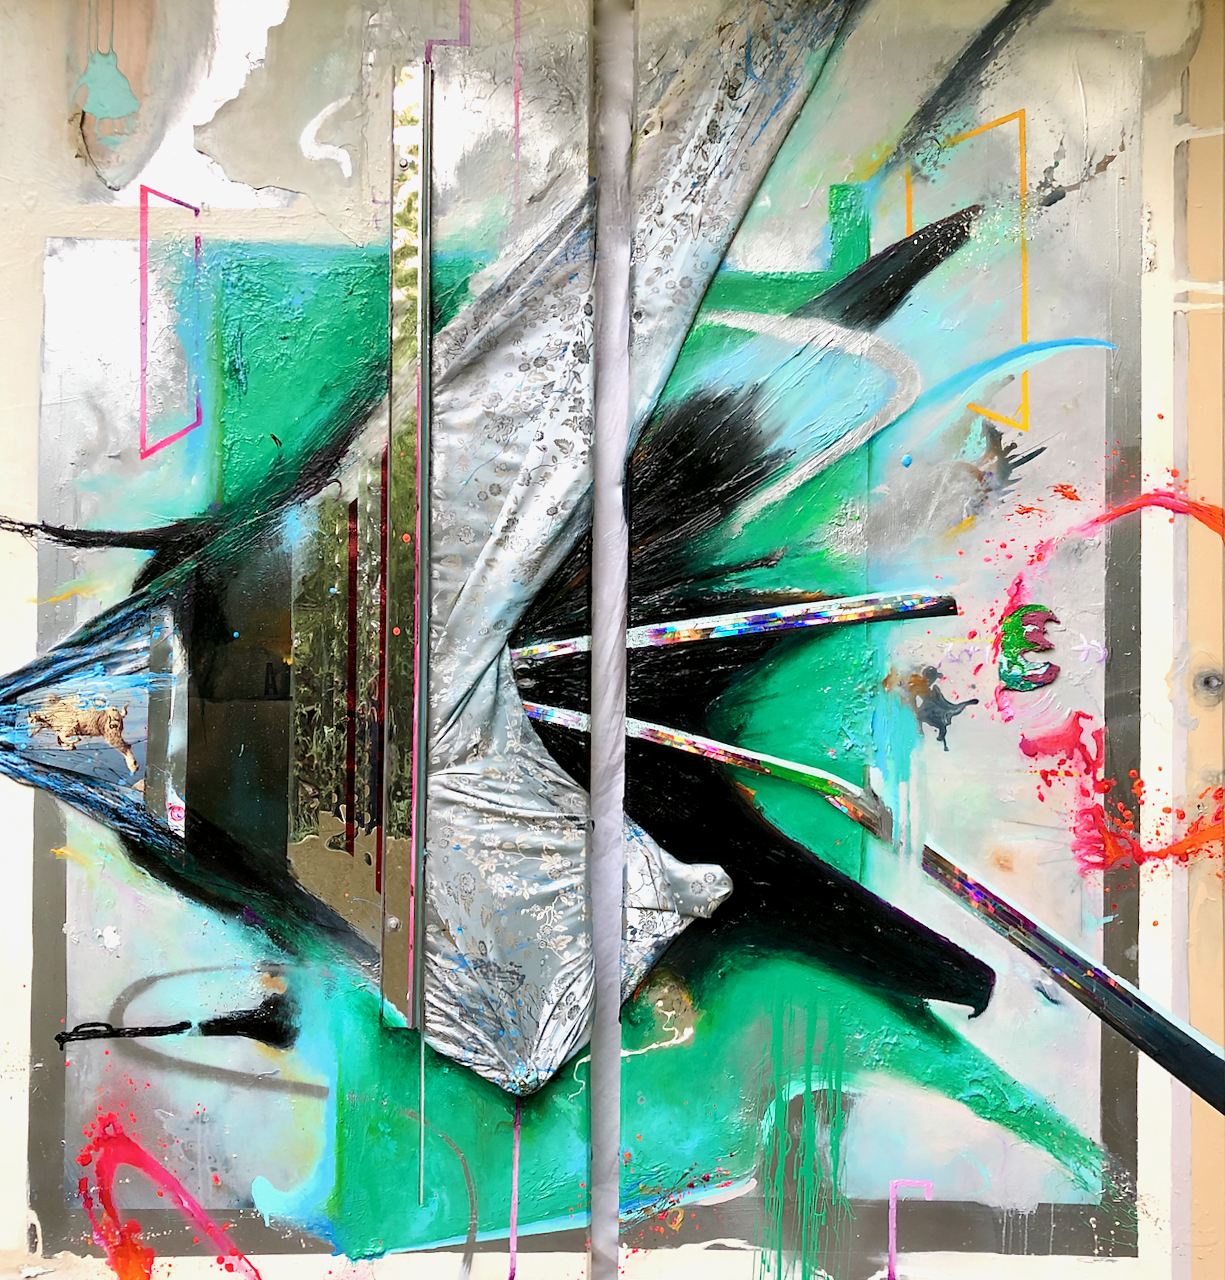 """Lex Aeterna""  acrylic, spray paint, metal, x-ray film, photo, fabric, polycarbonate, reflective mylar, plexiglass, LED lighting with 44 multi-color key remote on wood panel  78"" X 72"" Diptych"